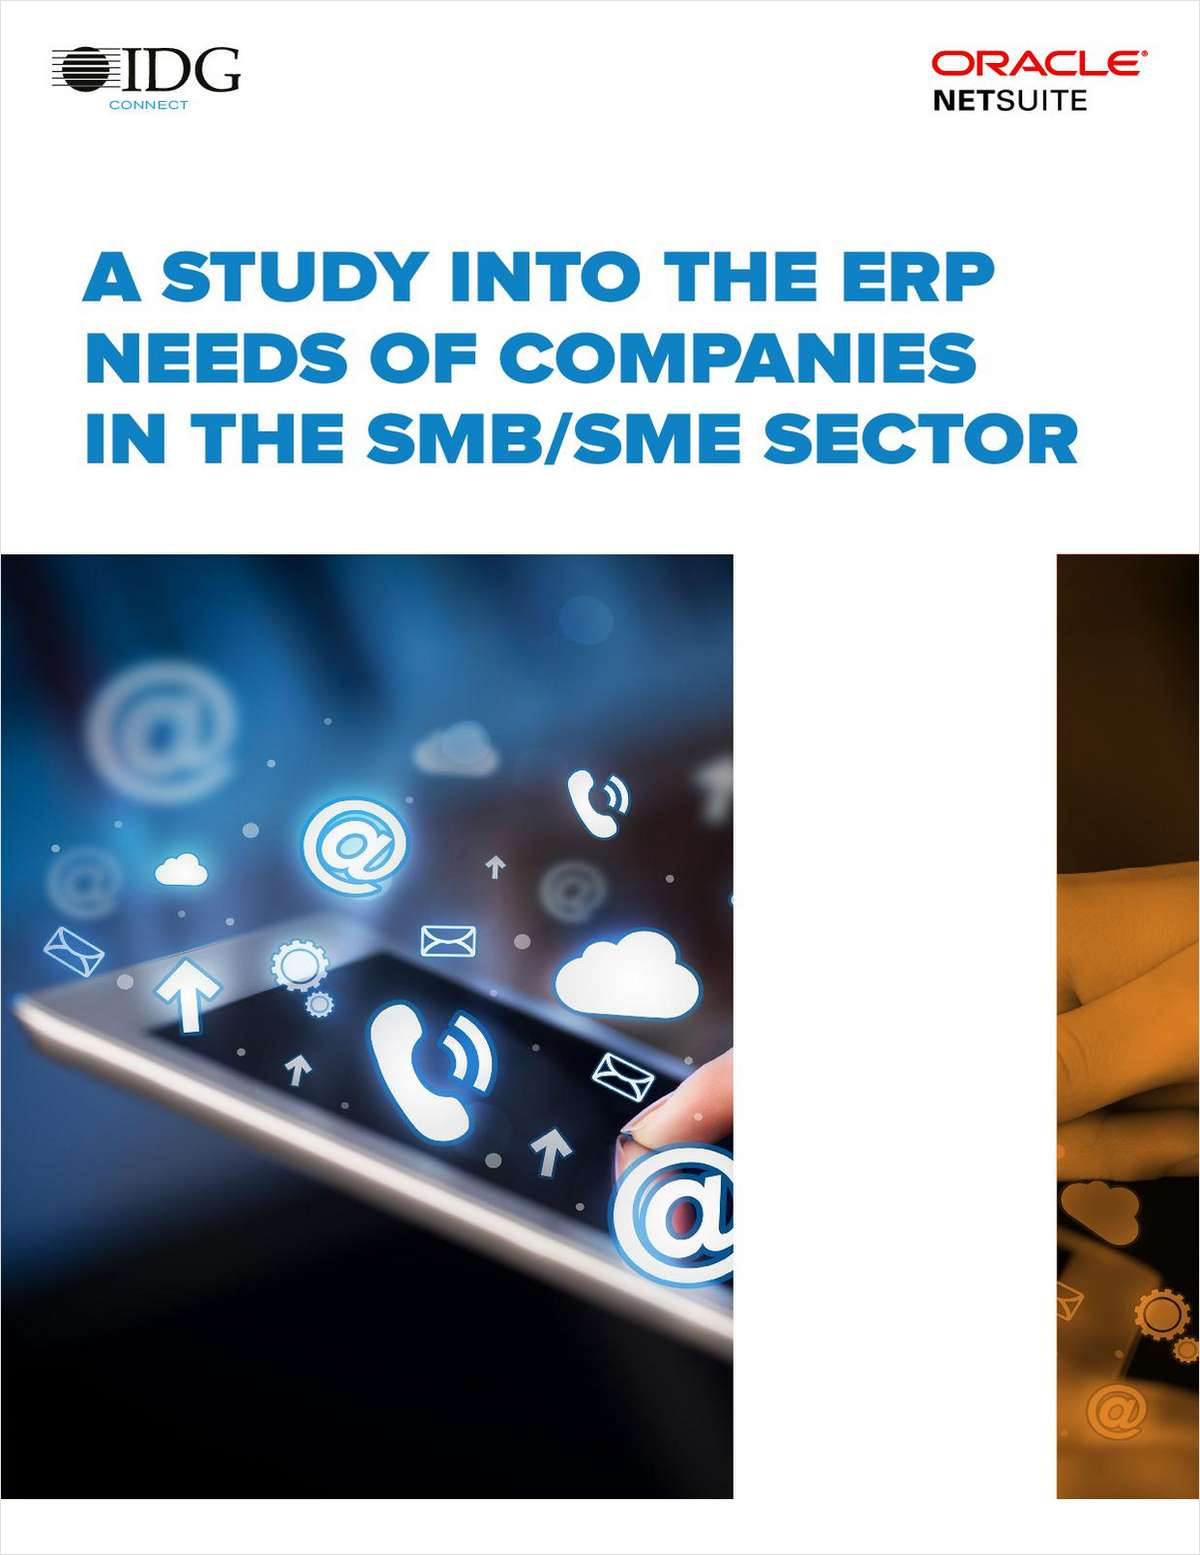 A Study into the ERP Needs of Companies in the SMB/SME Sector